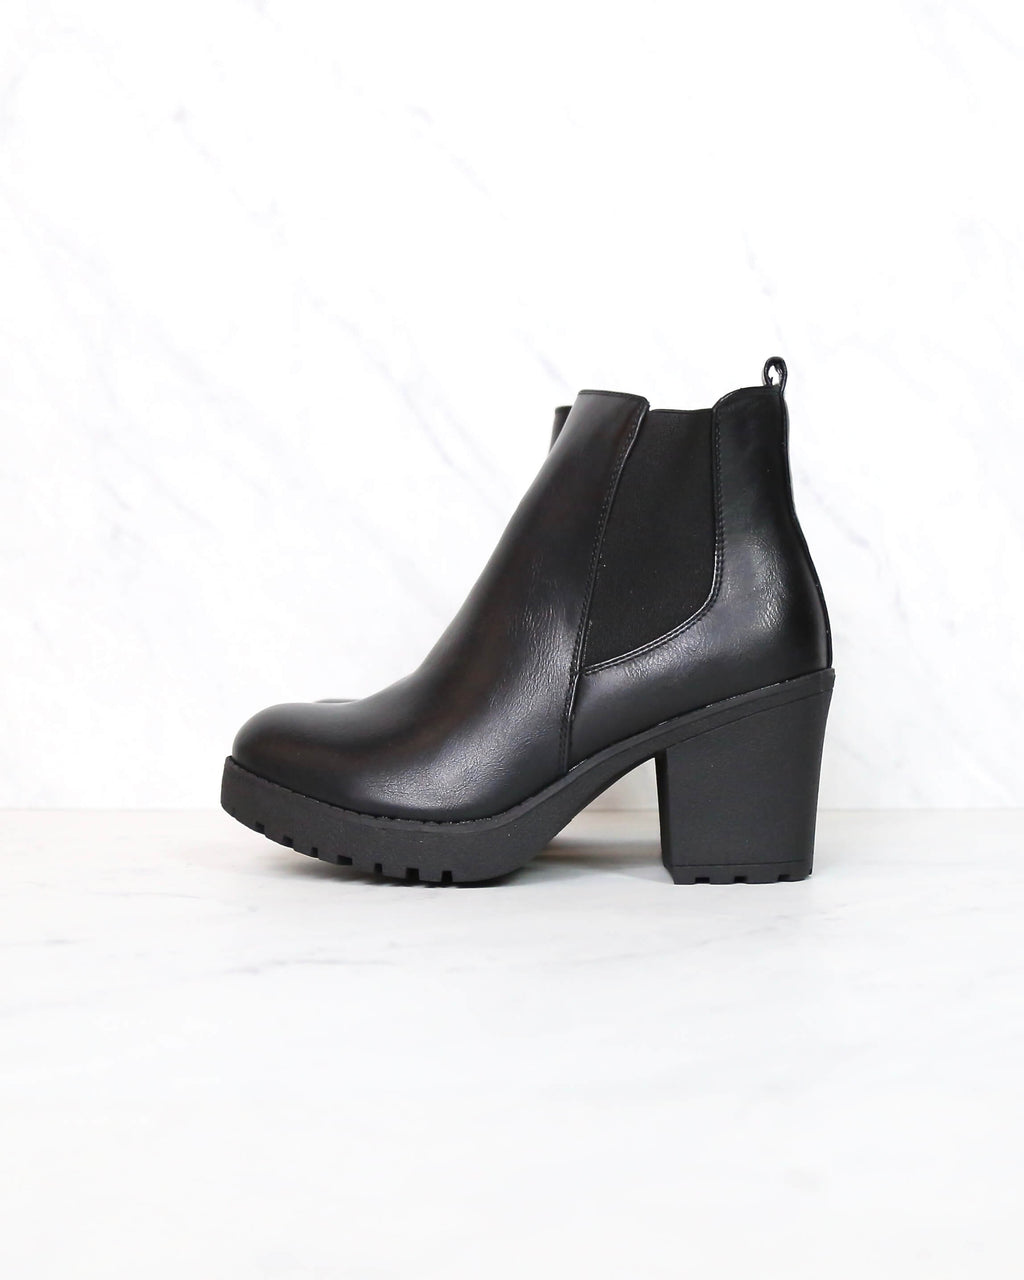 a83d81a85ba Womens Shoes, Shipped Free - always | shophearts.com